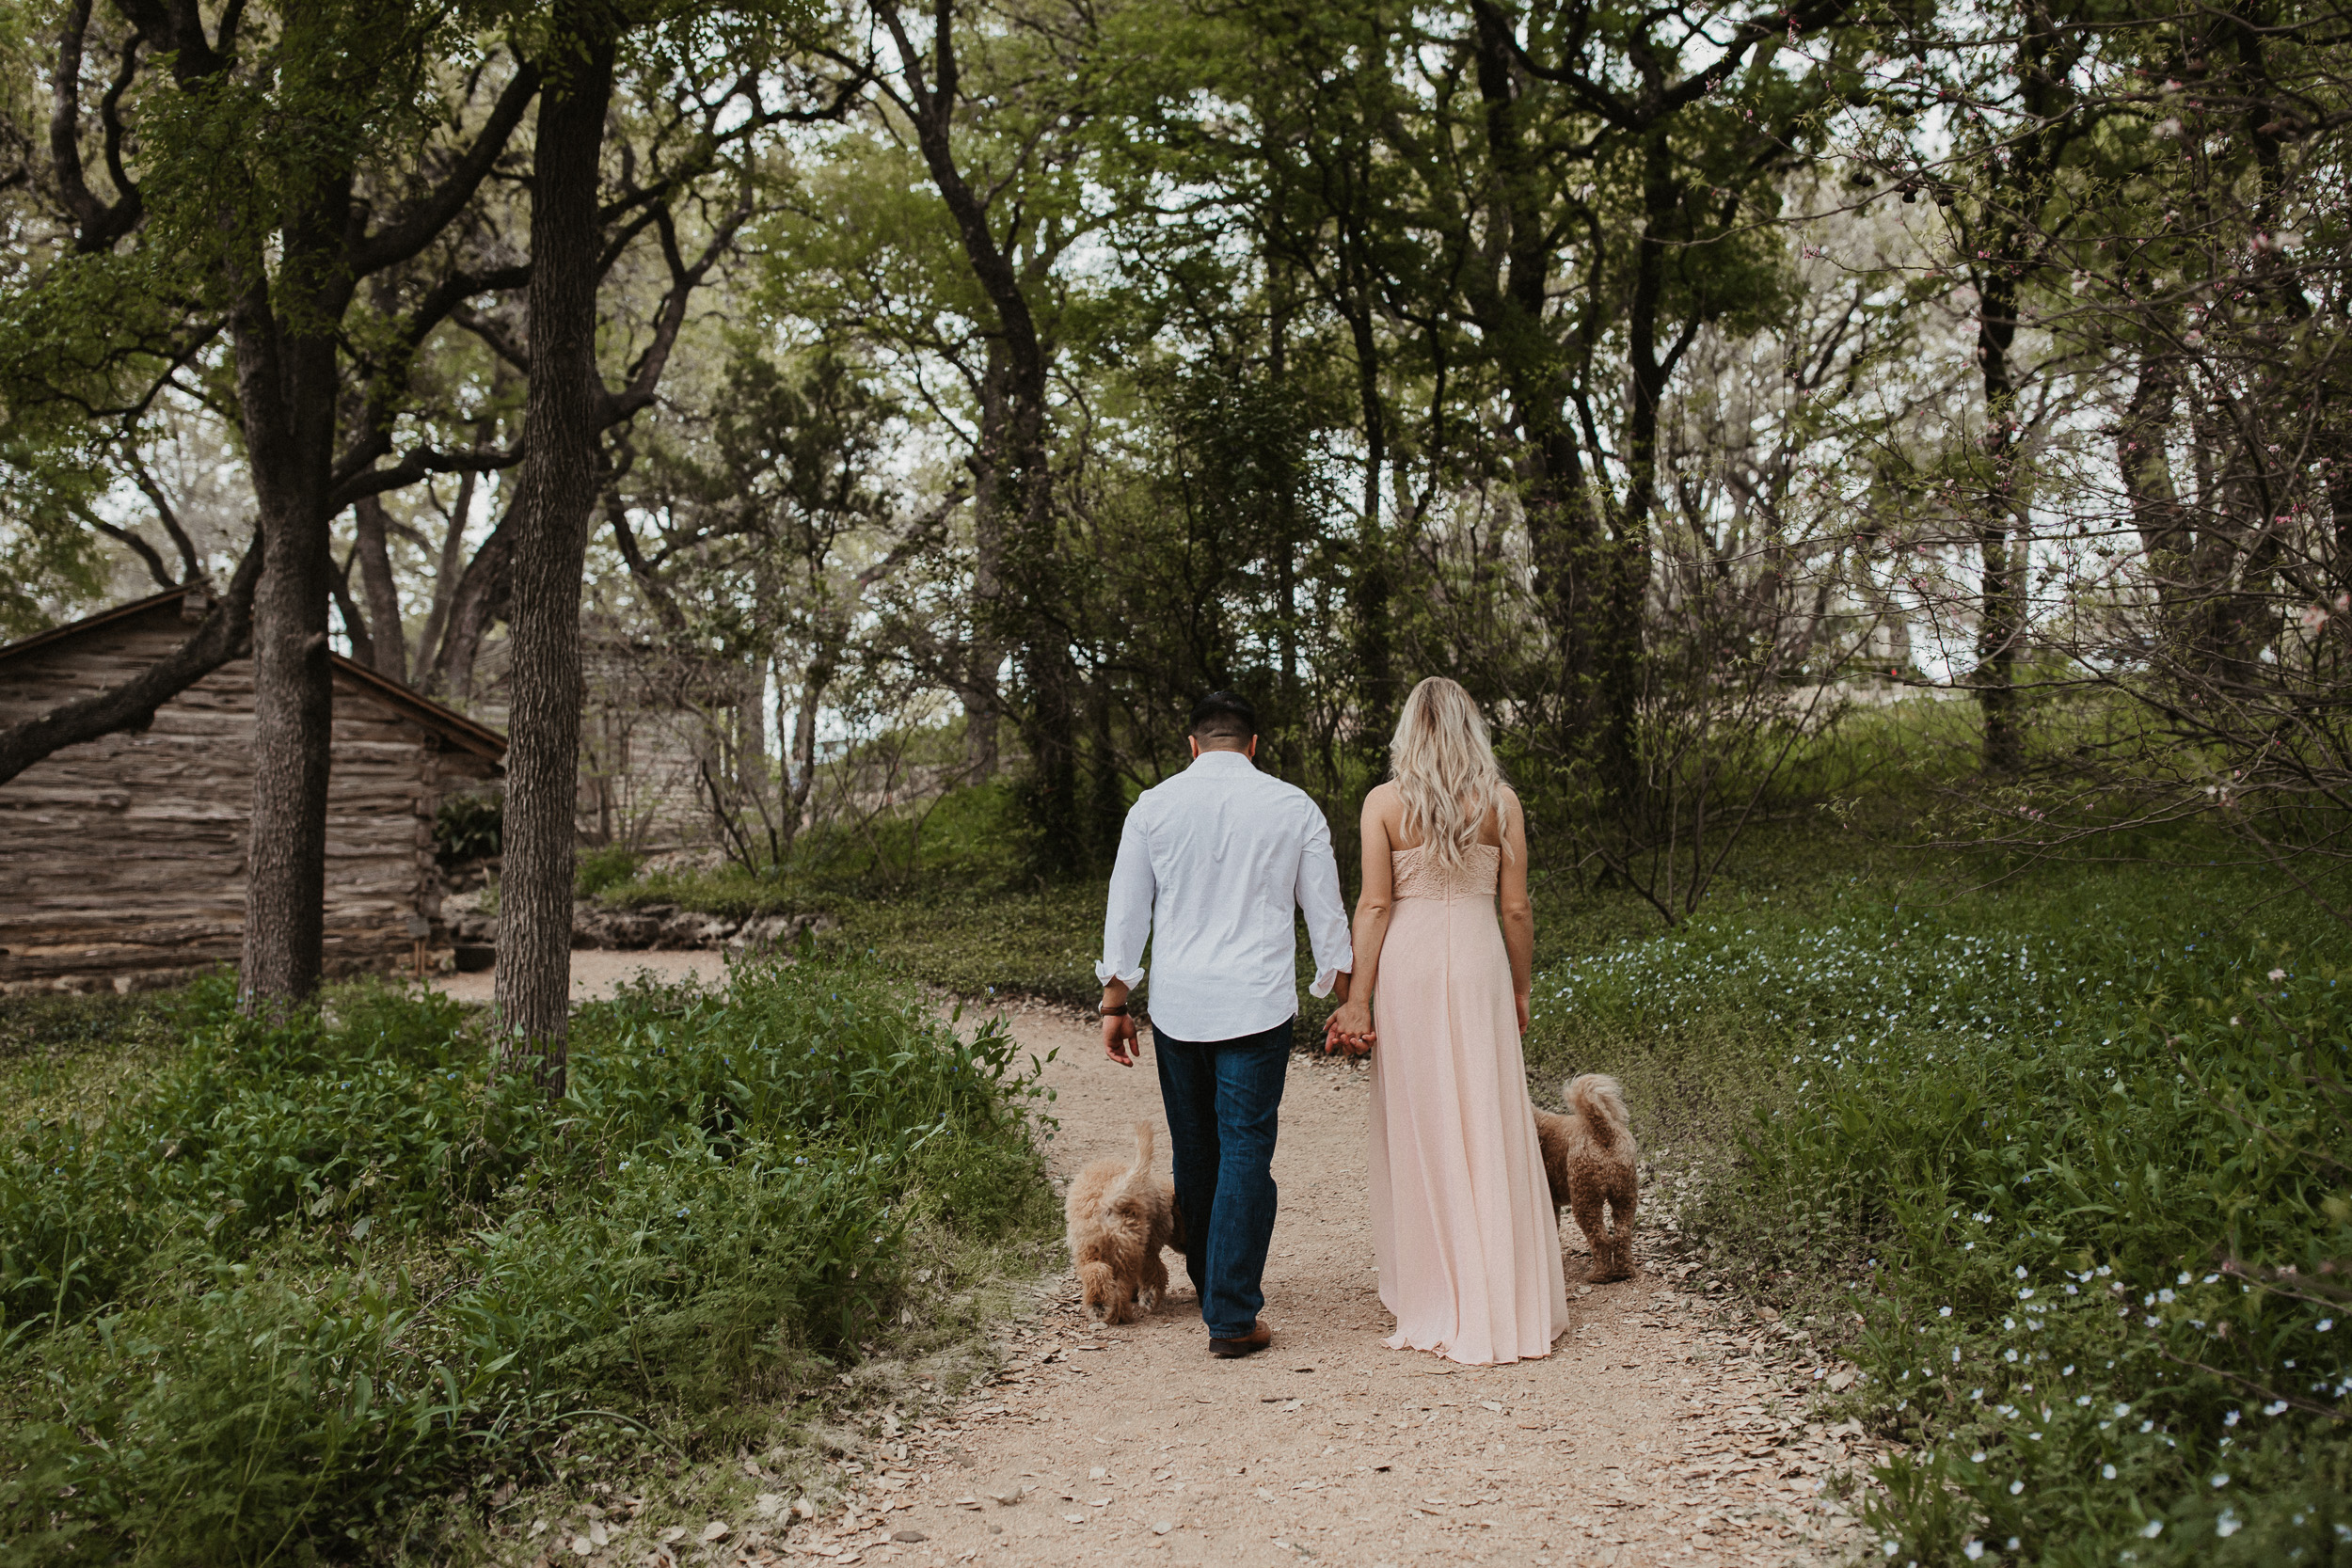 liz-stephen-engagement-mount-bonnell-austin-texas-001.jpg